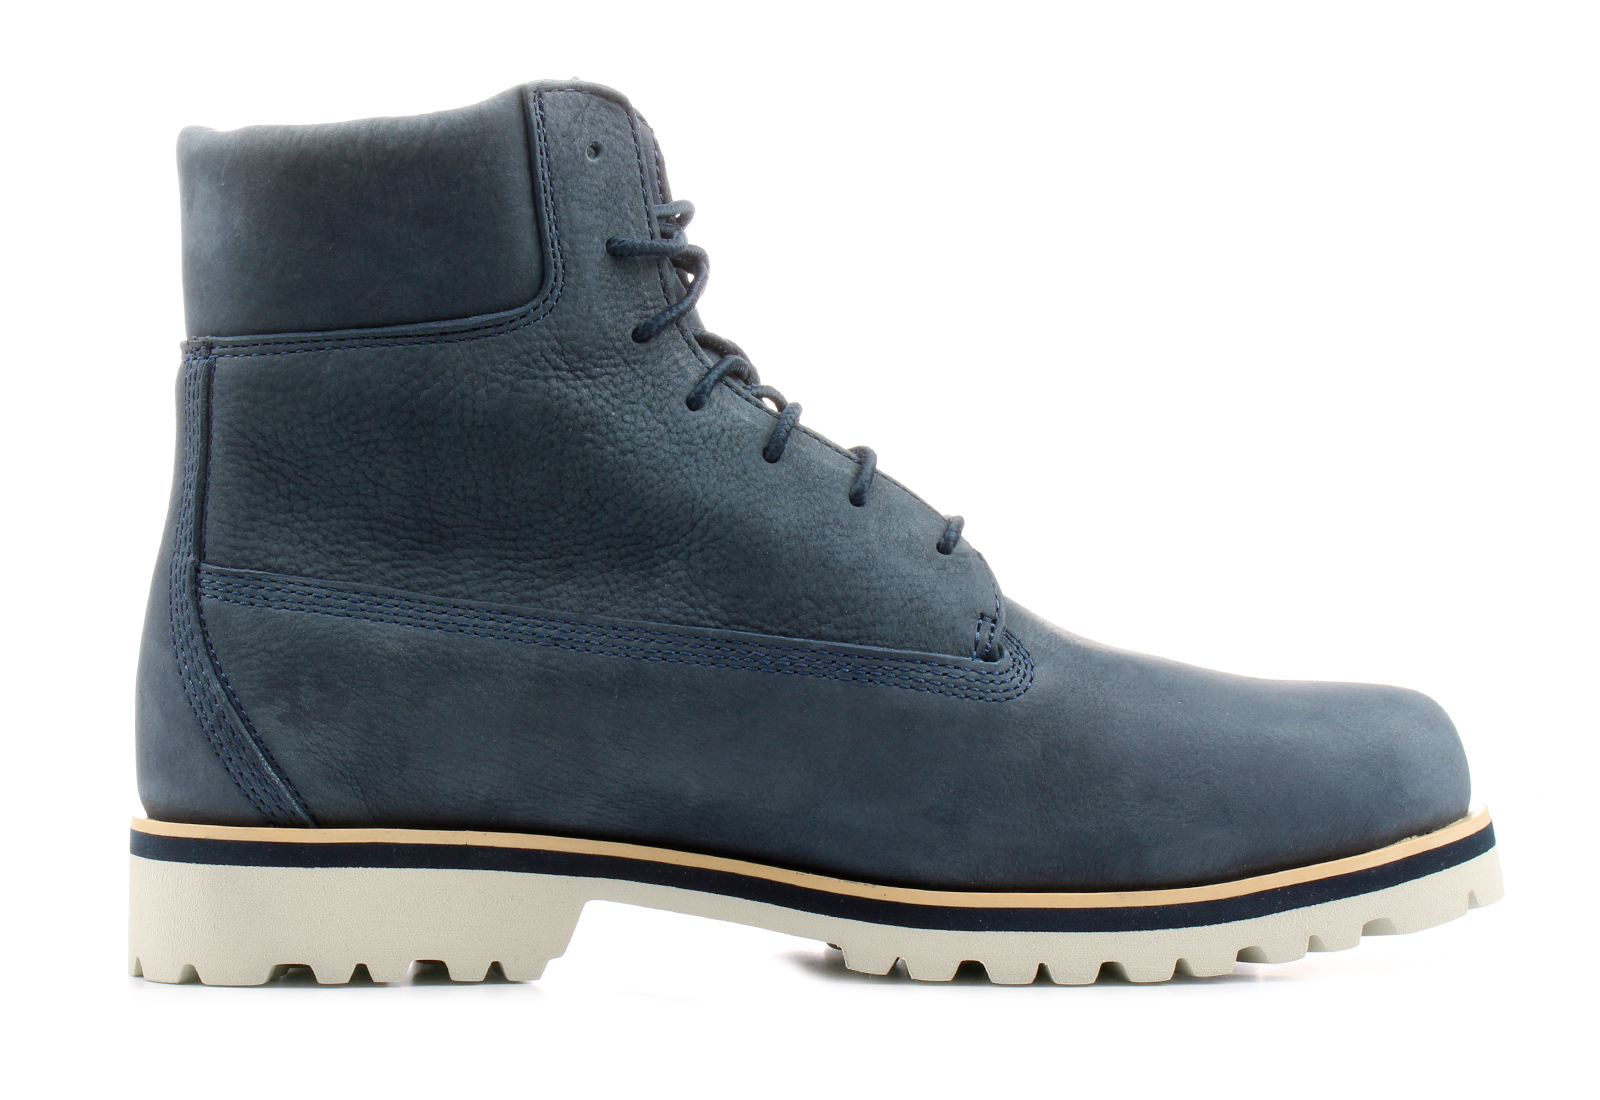 Timberland Boots Chilmark A1pa1 Nvy Online Shop For